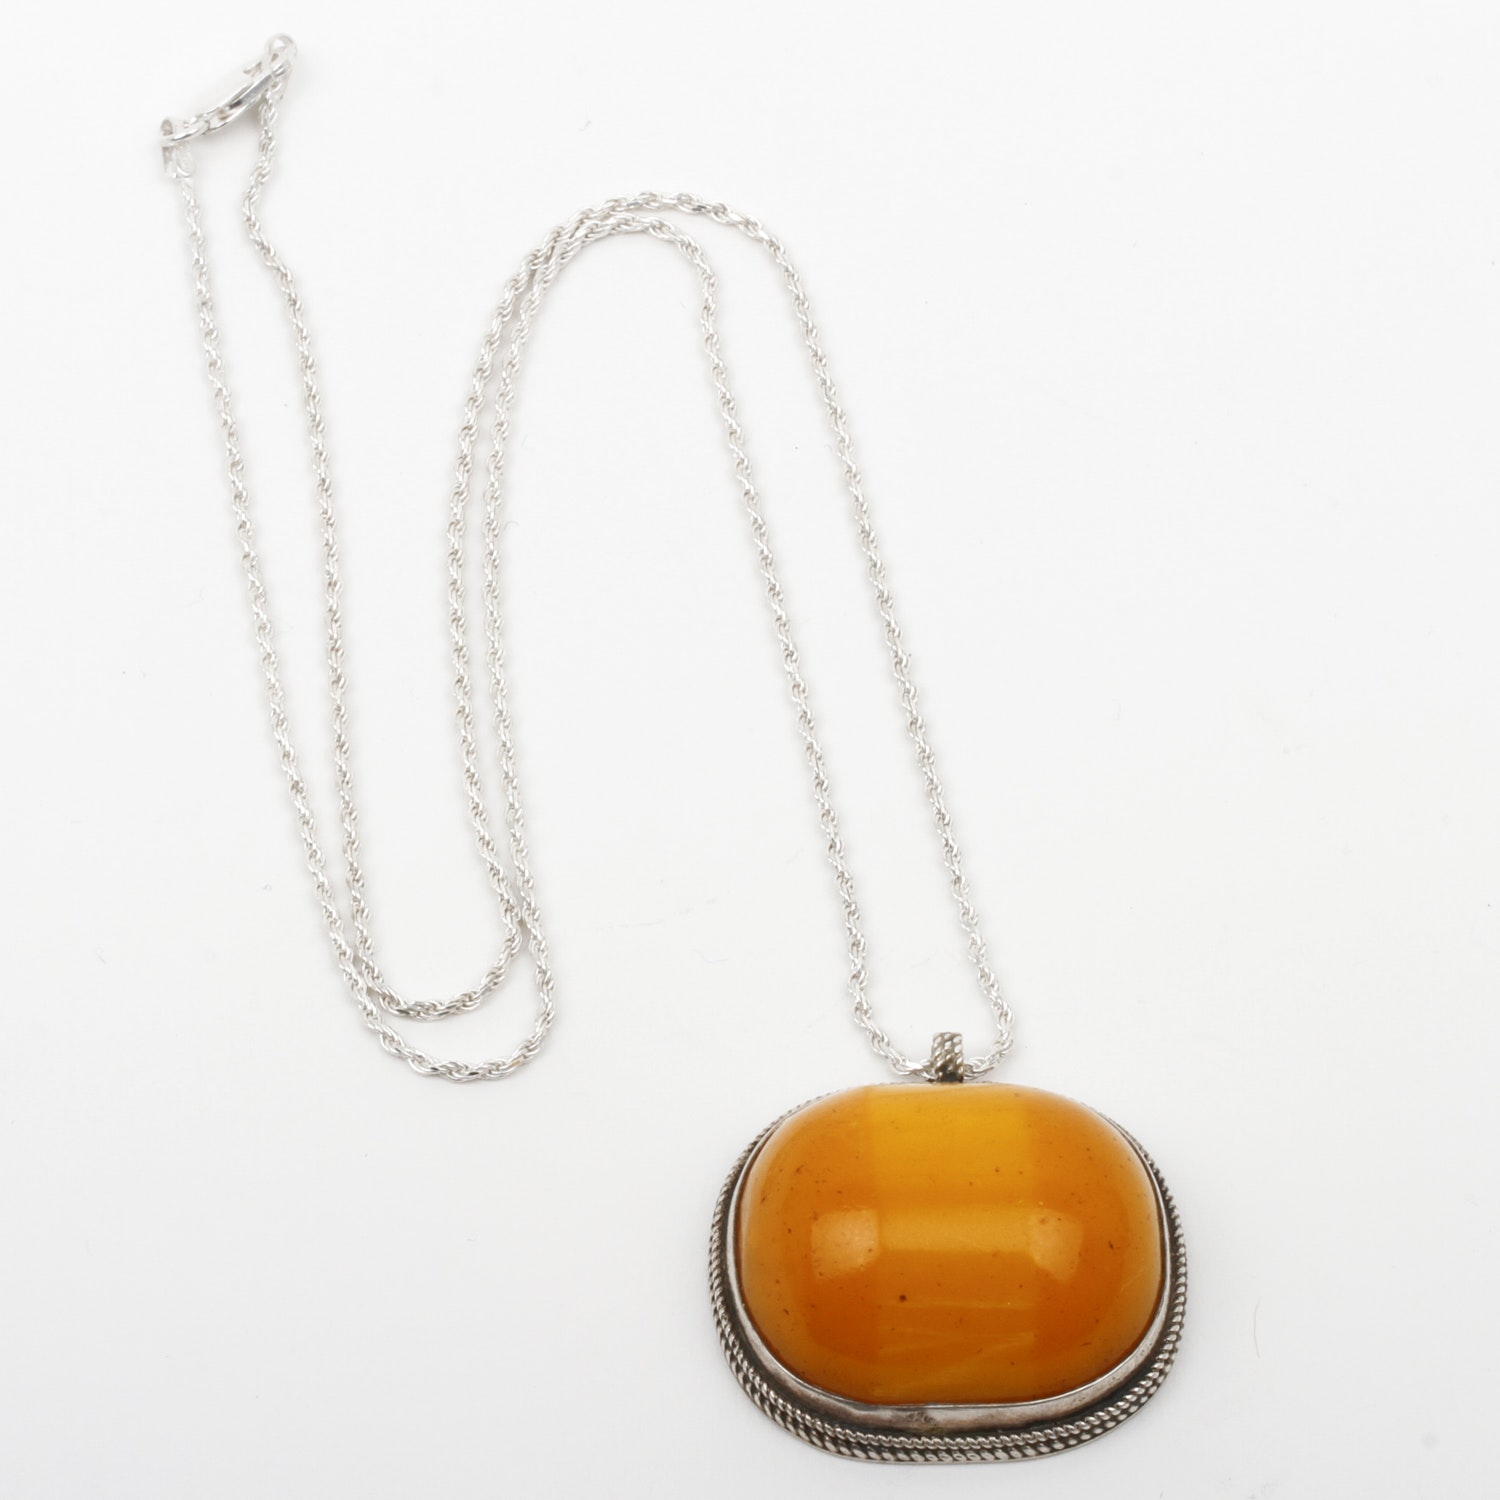 Vintage Sterling Silver and Butterscotch Amber Pendant Necklace